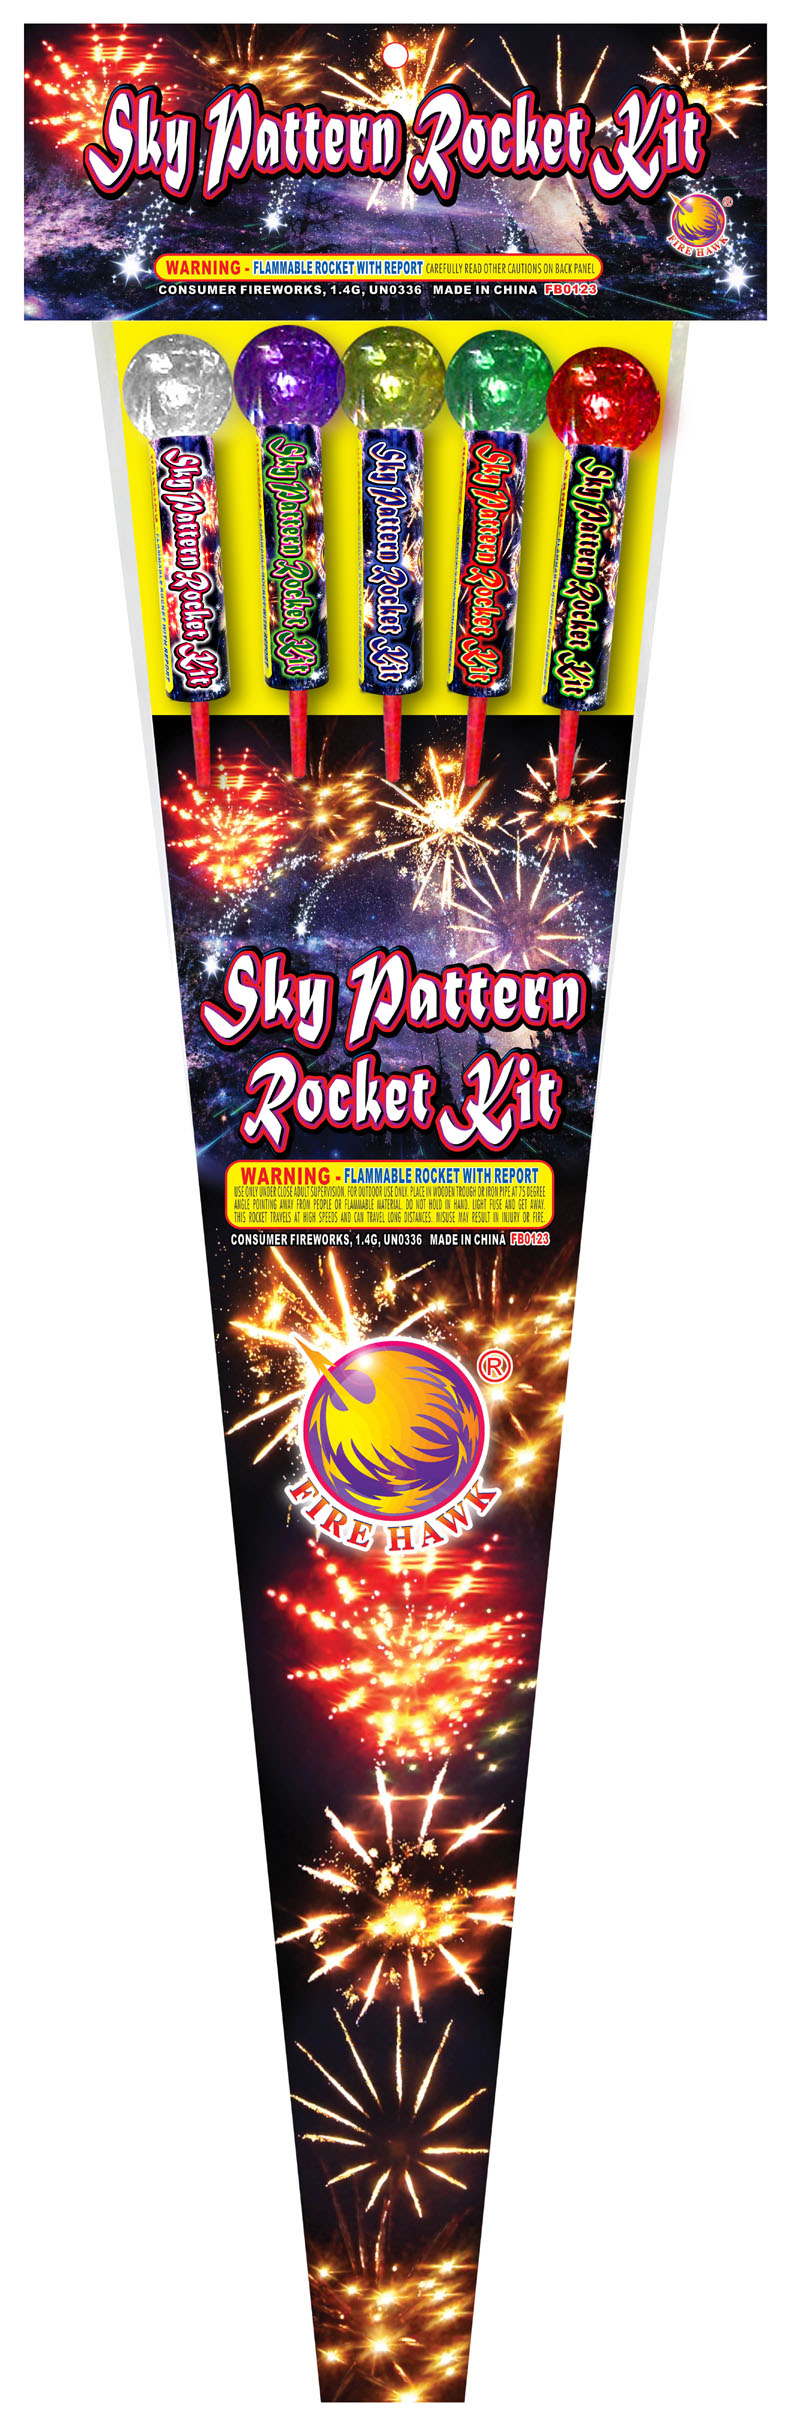 FB0123-Sky-Pattern-Rocket-